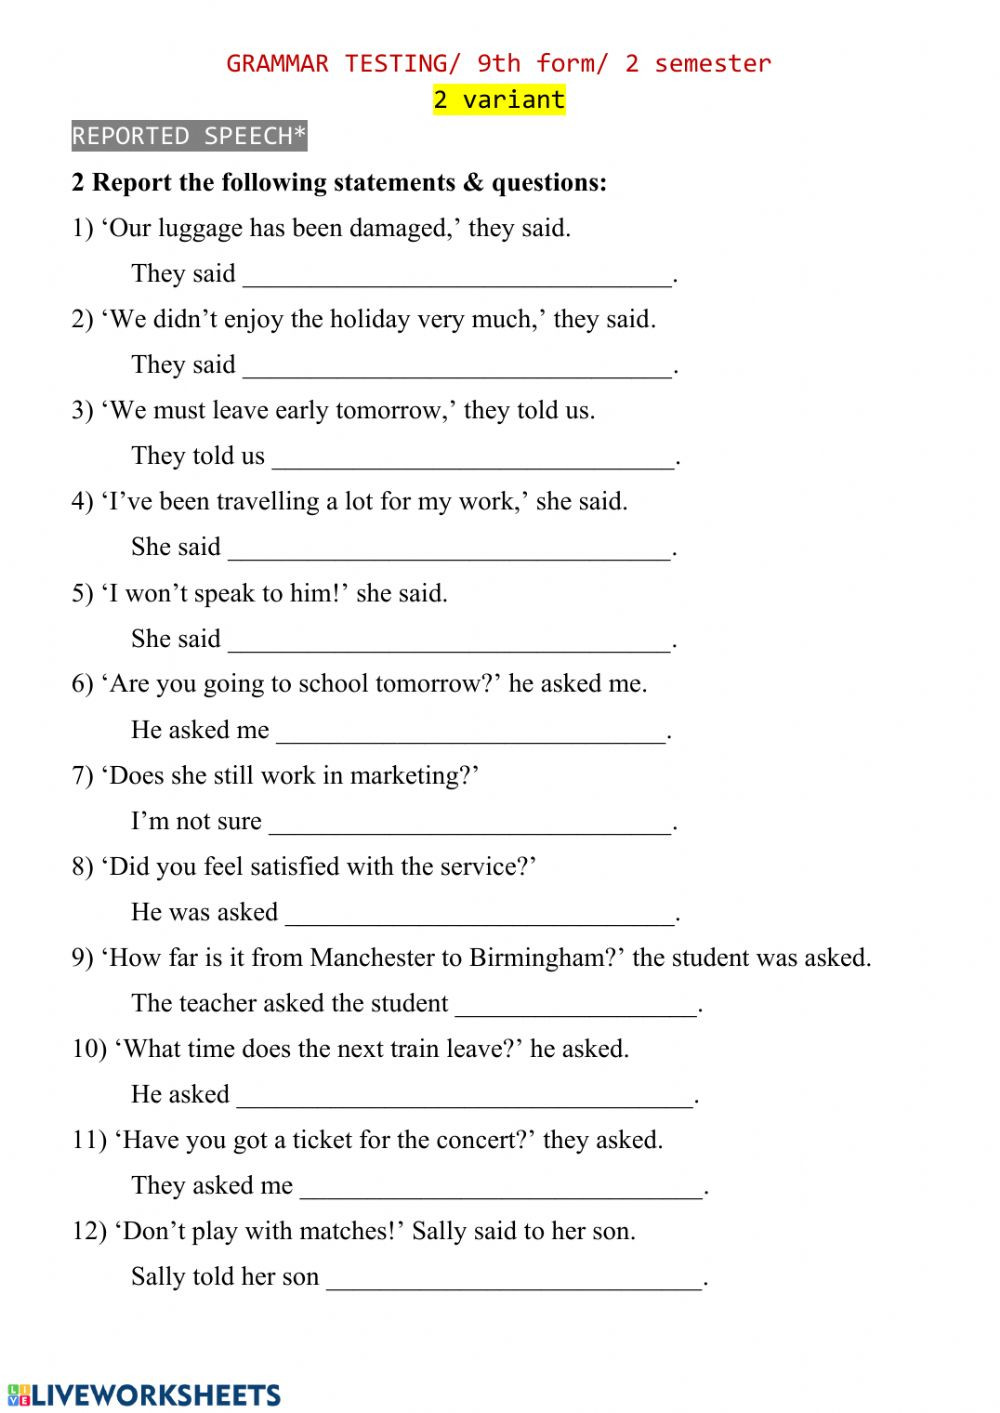 9th Grade Grammar Worksheets Pdf Reported Speech Test 2 Interactive Worksheet